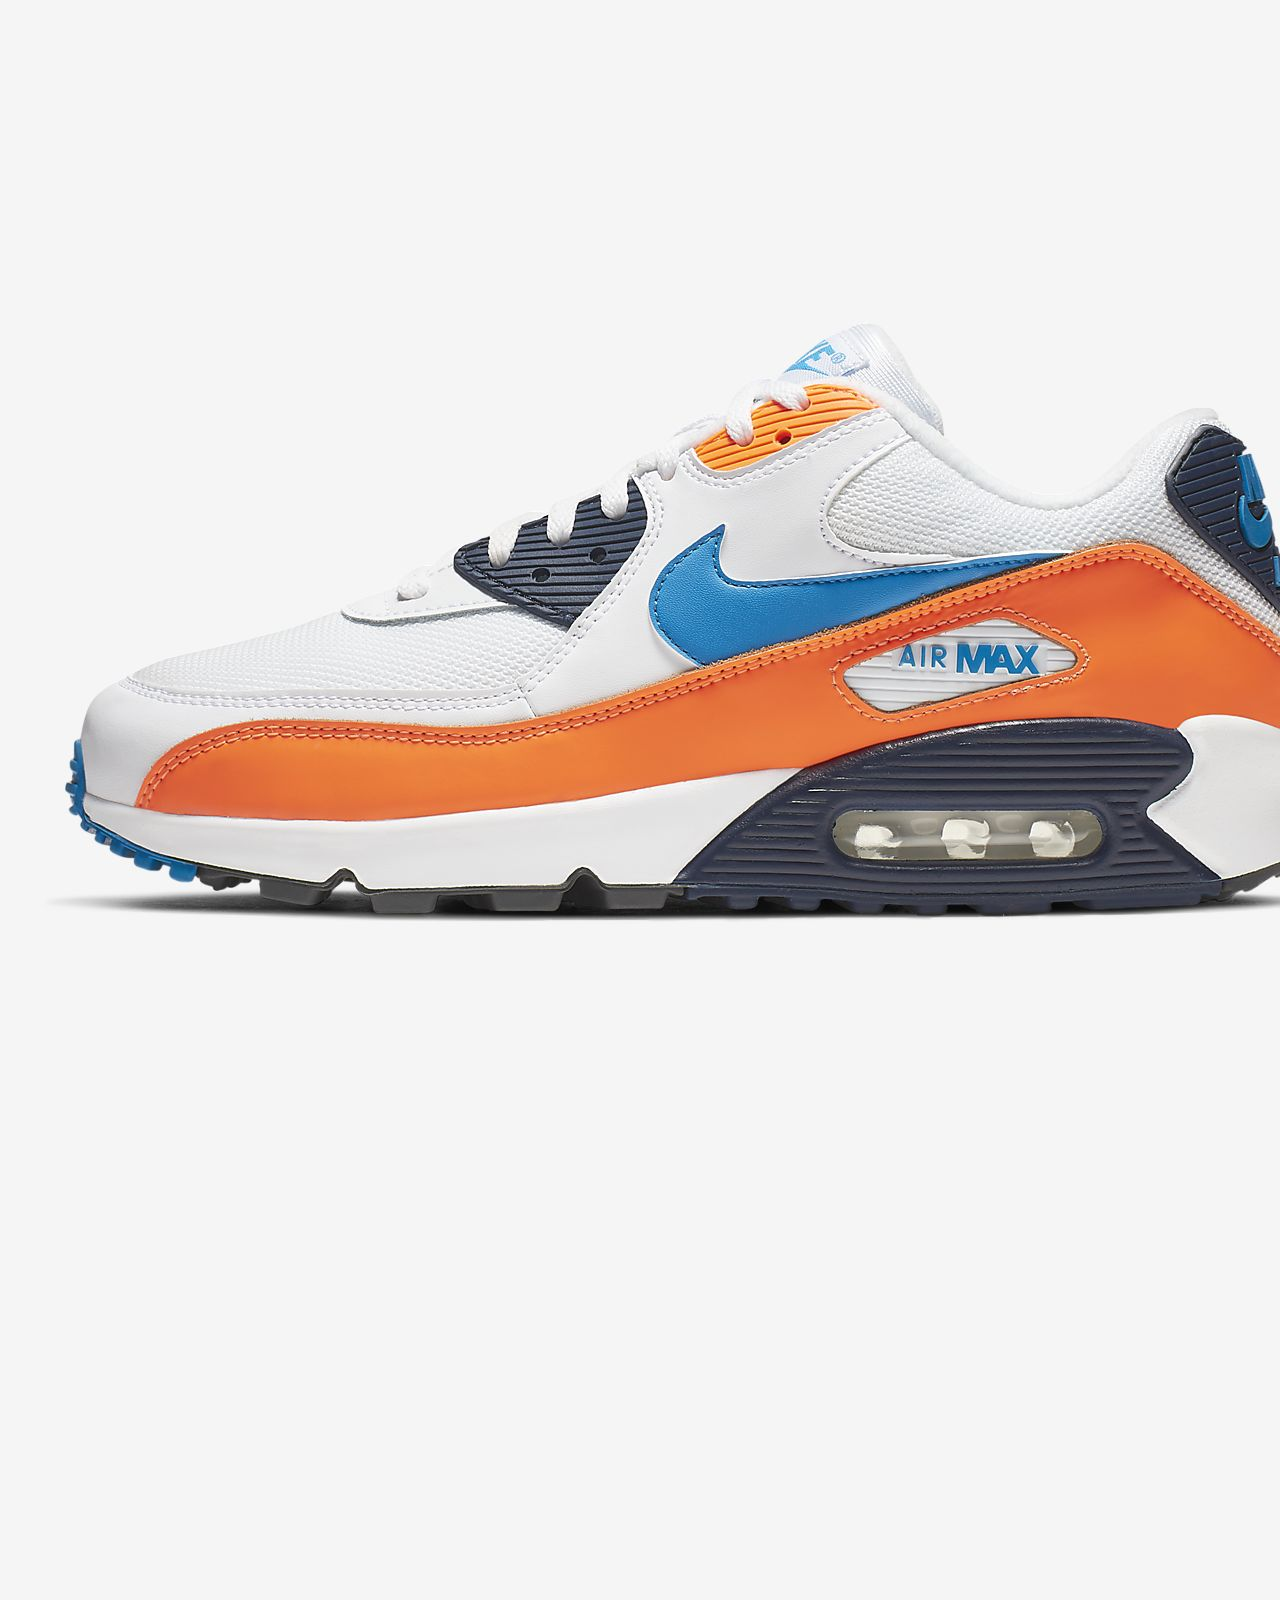 separation shoes 6995d 1354d ... Nike Air Max 90 Essential Men s Shoe